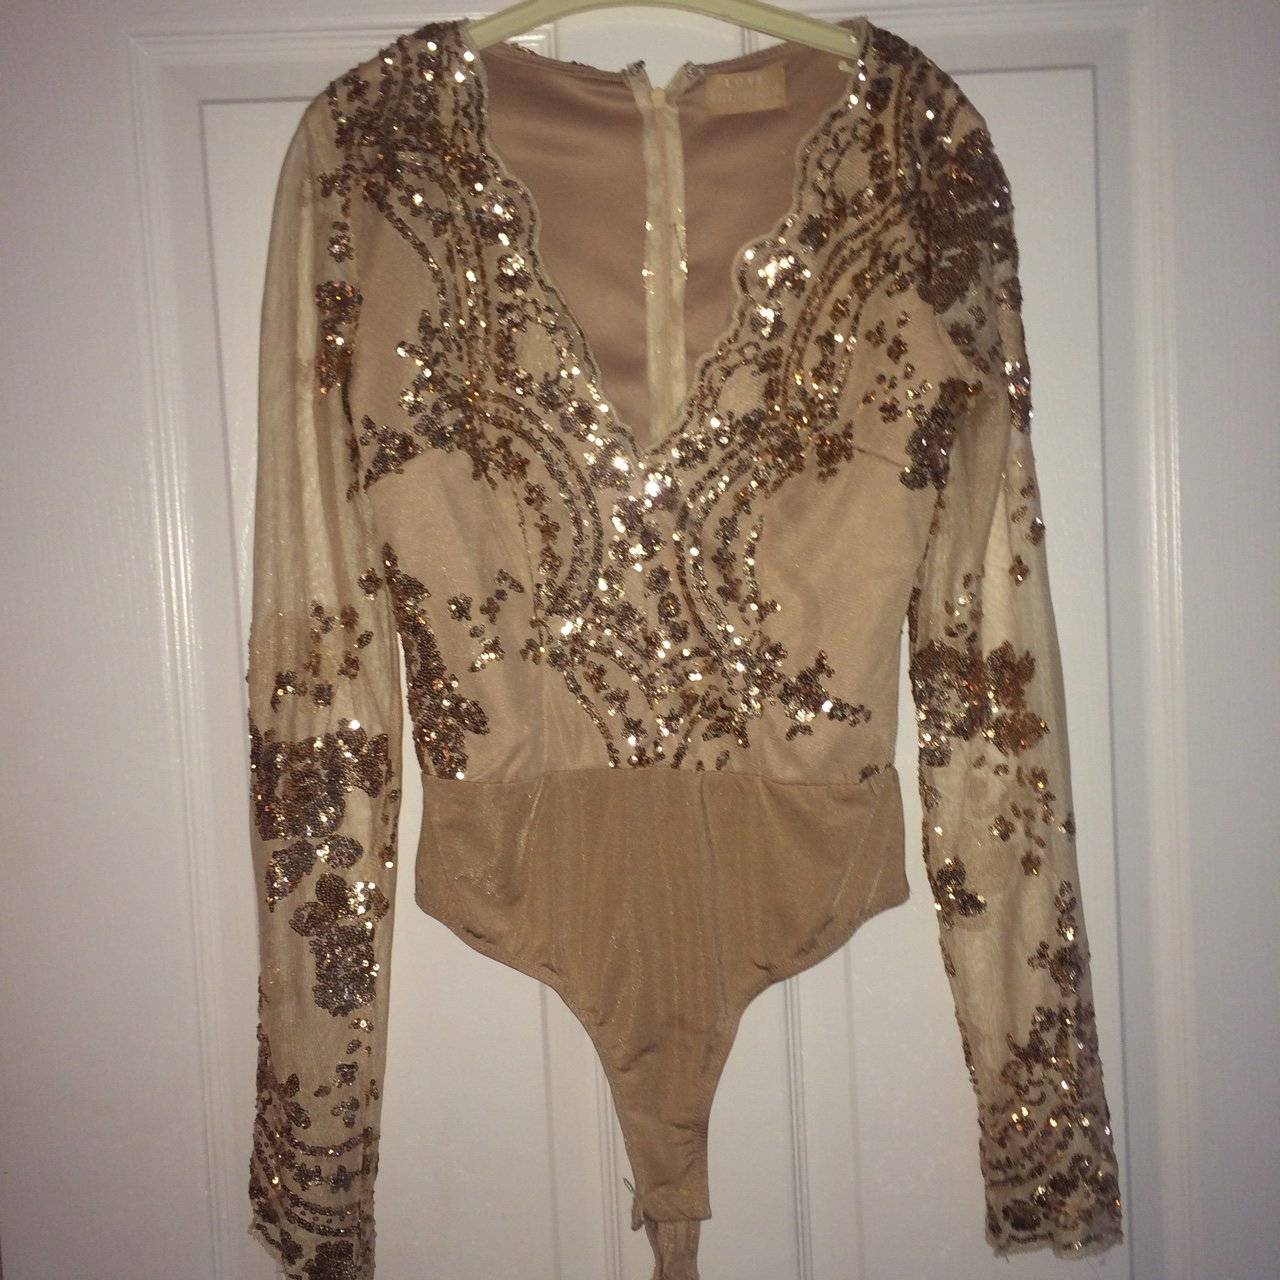 d1724bff1b4c4 Gorgeous gold nude embellished sequin bodysuit with plunge 8 - Depop